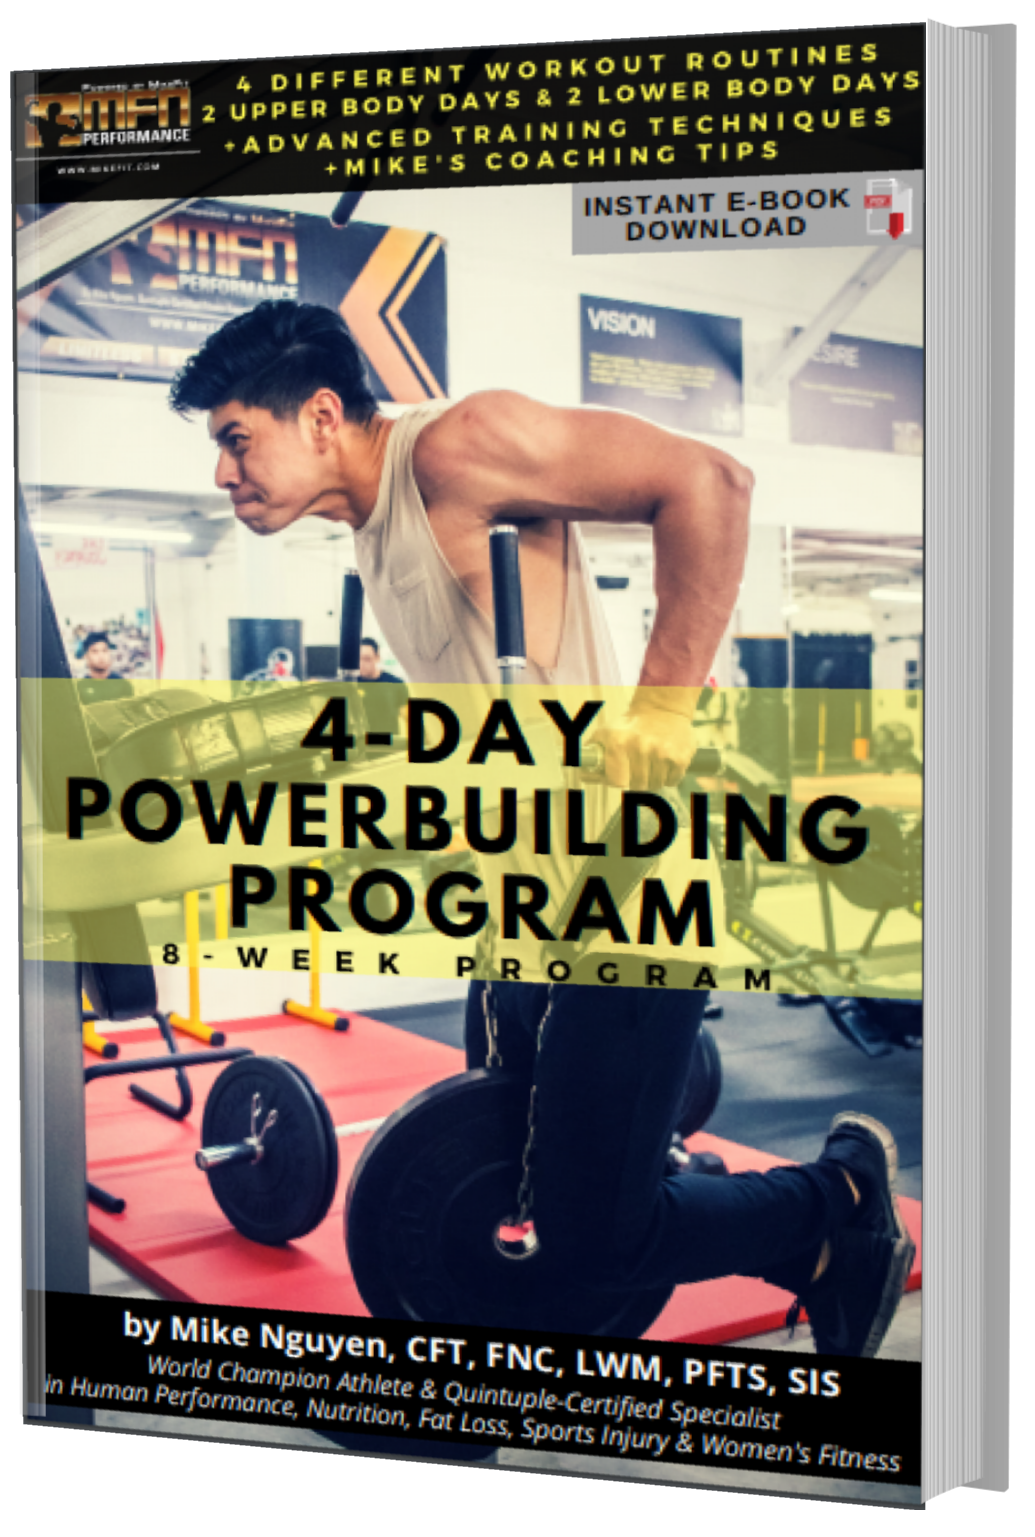 MFN POWER-BUILDING - 8 Week Program - Unisex (GYM)